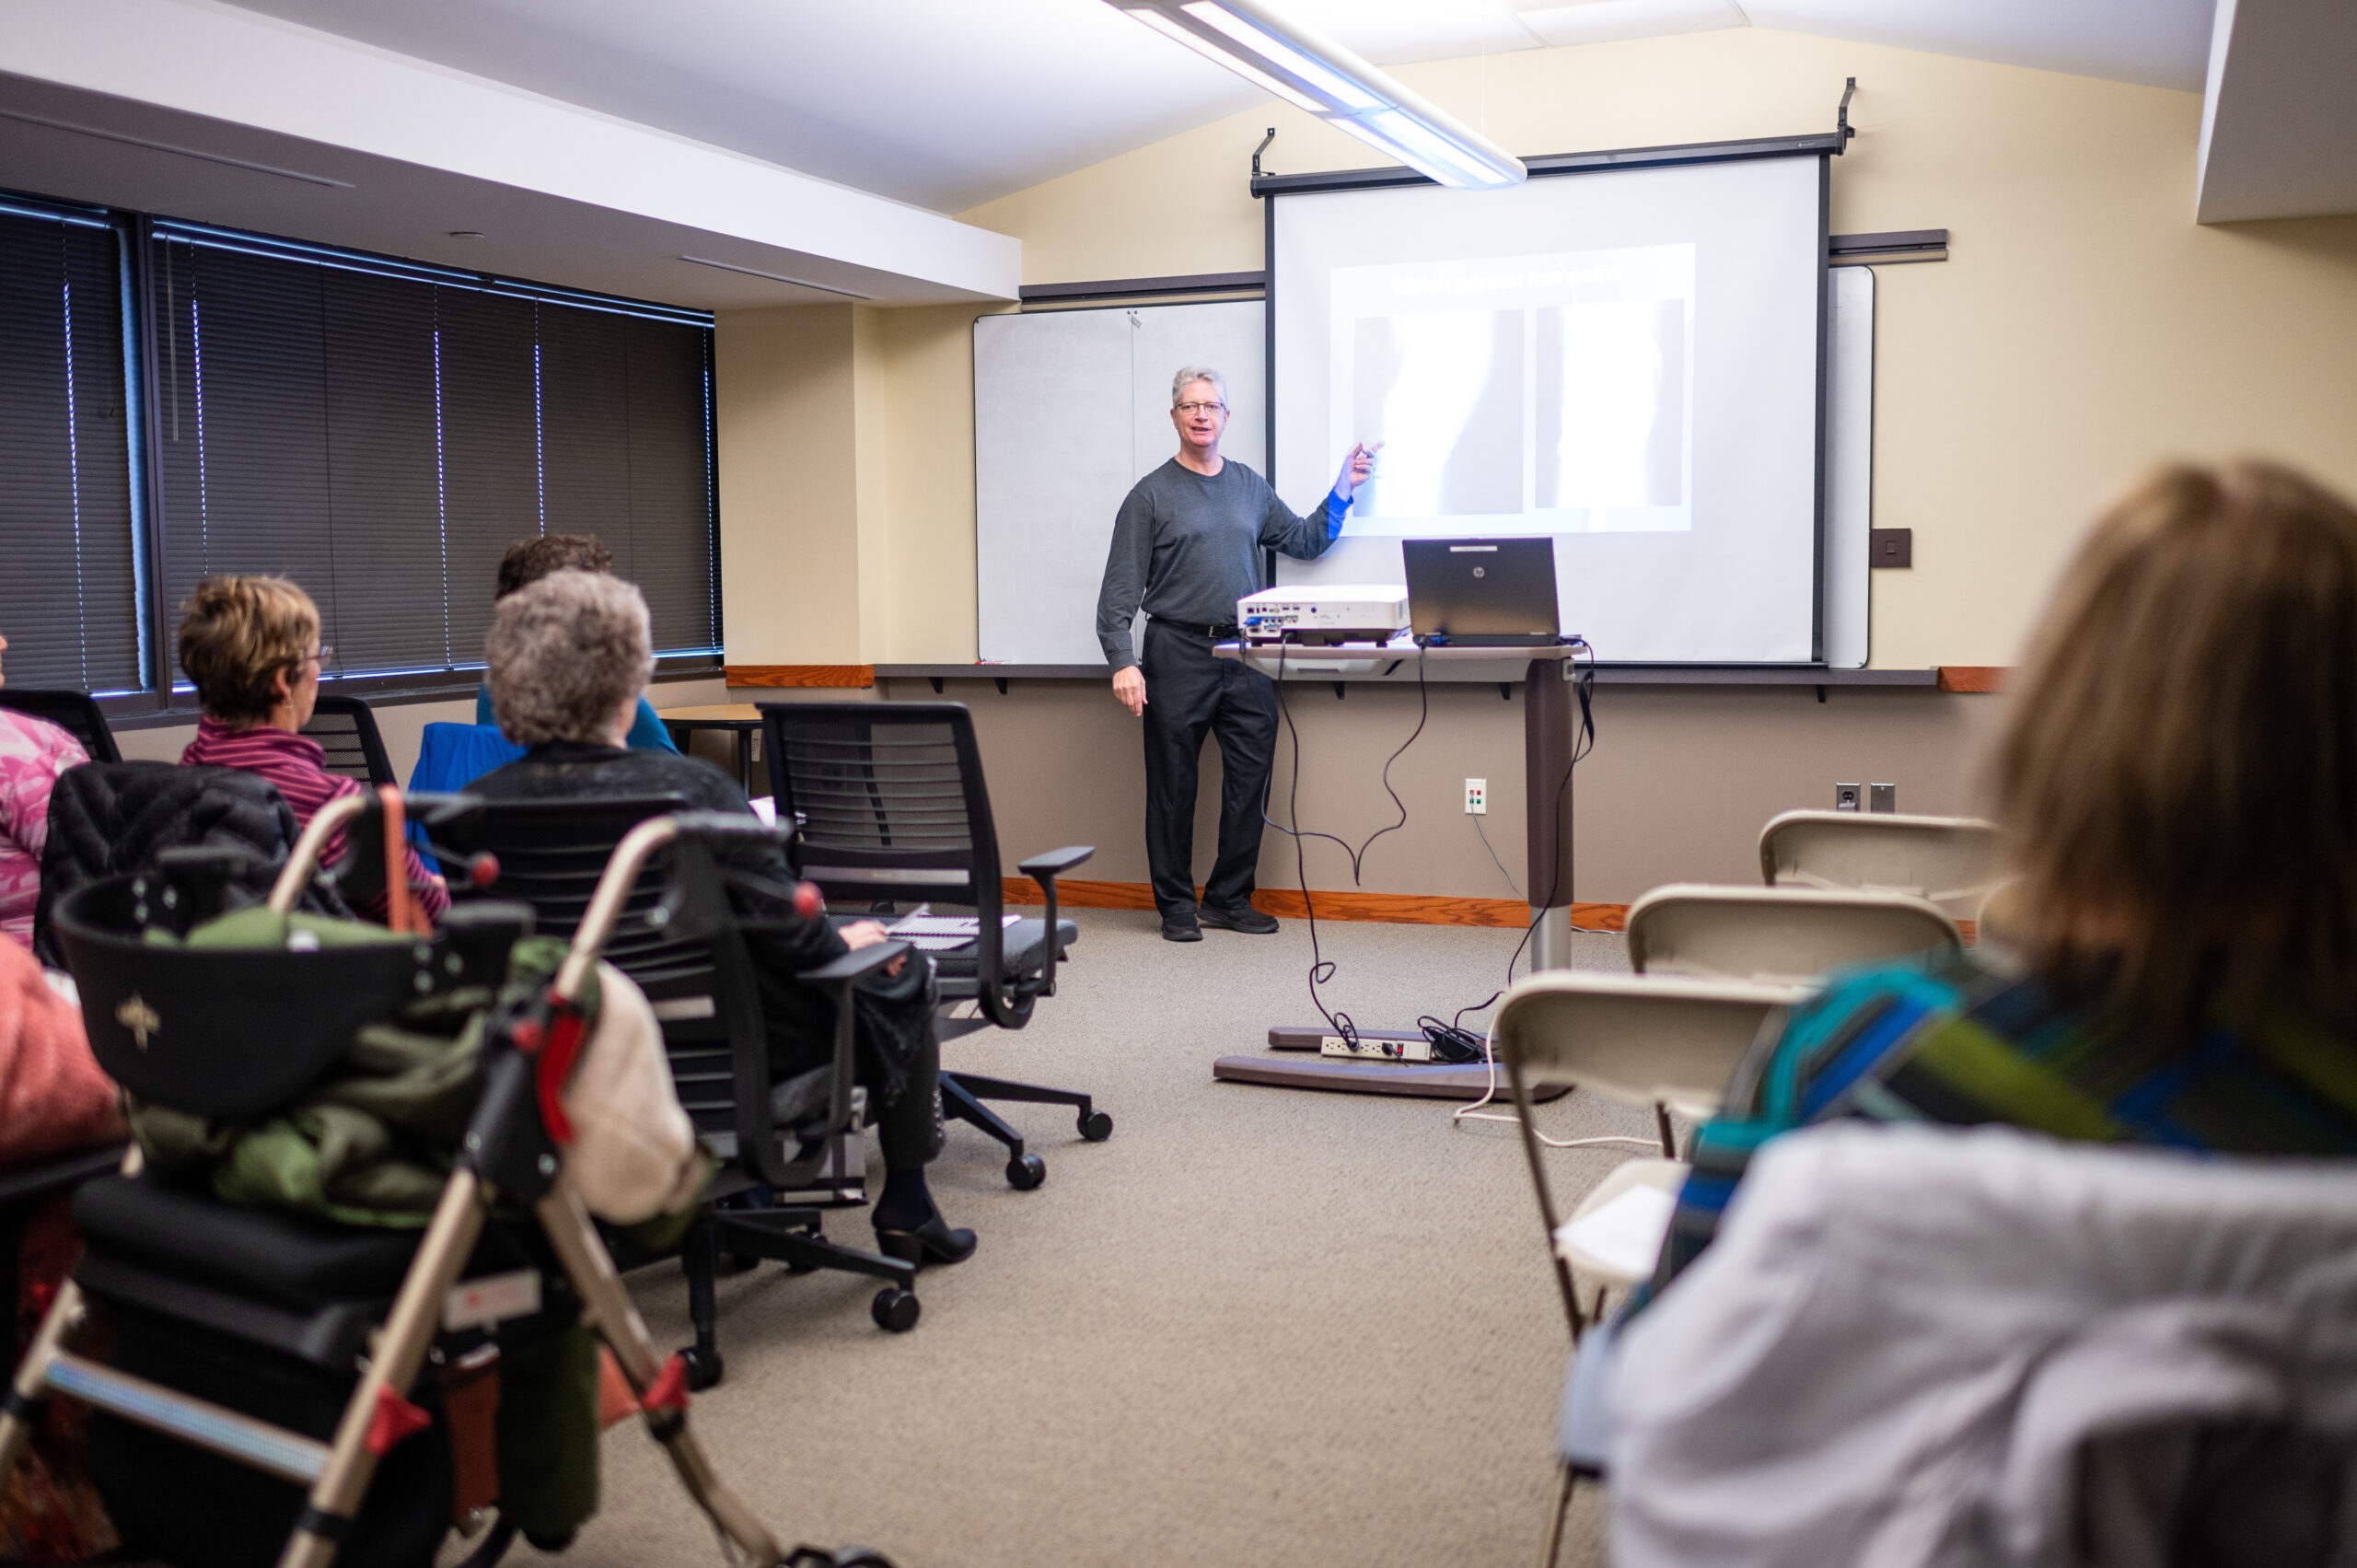 Dan Clauw, director of U-M's Chronic Pain & Fatigue Research Center, where doctors are teaching clinicians a new way of thinking about pain. Image credit: Eric Bronson, Michigan Photography